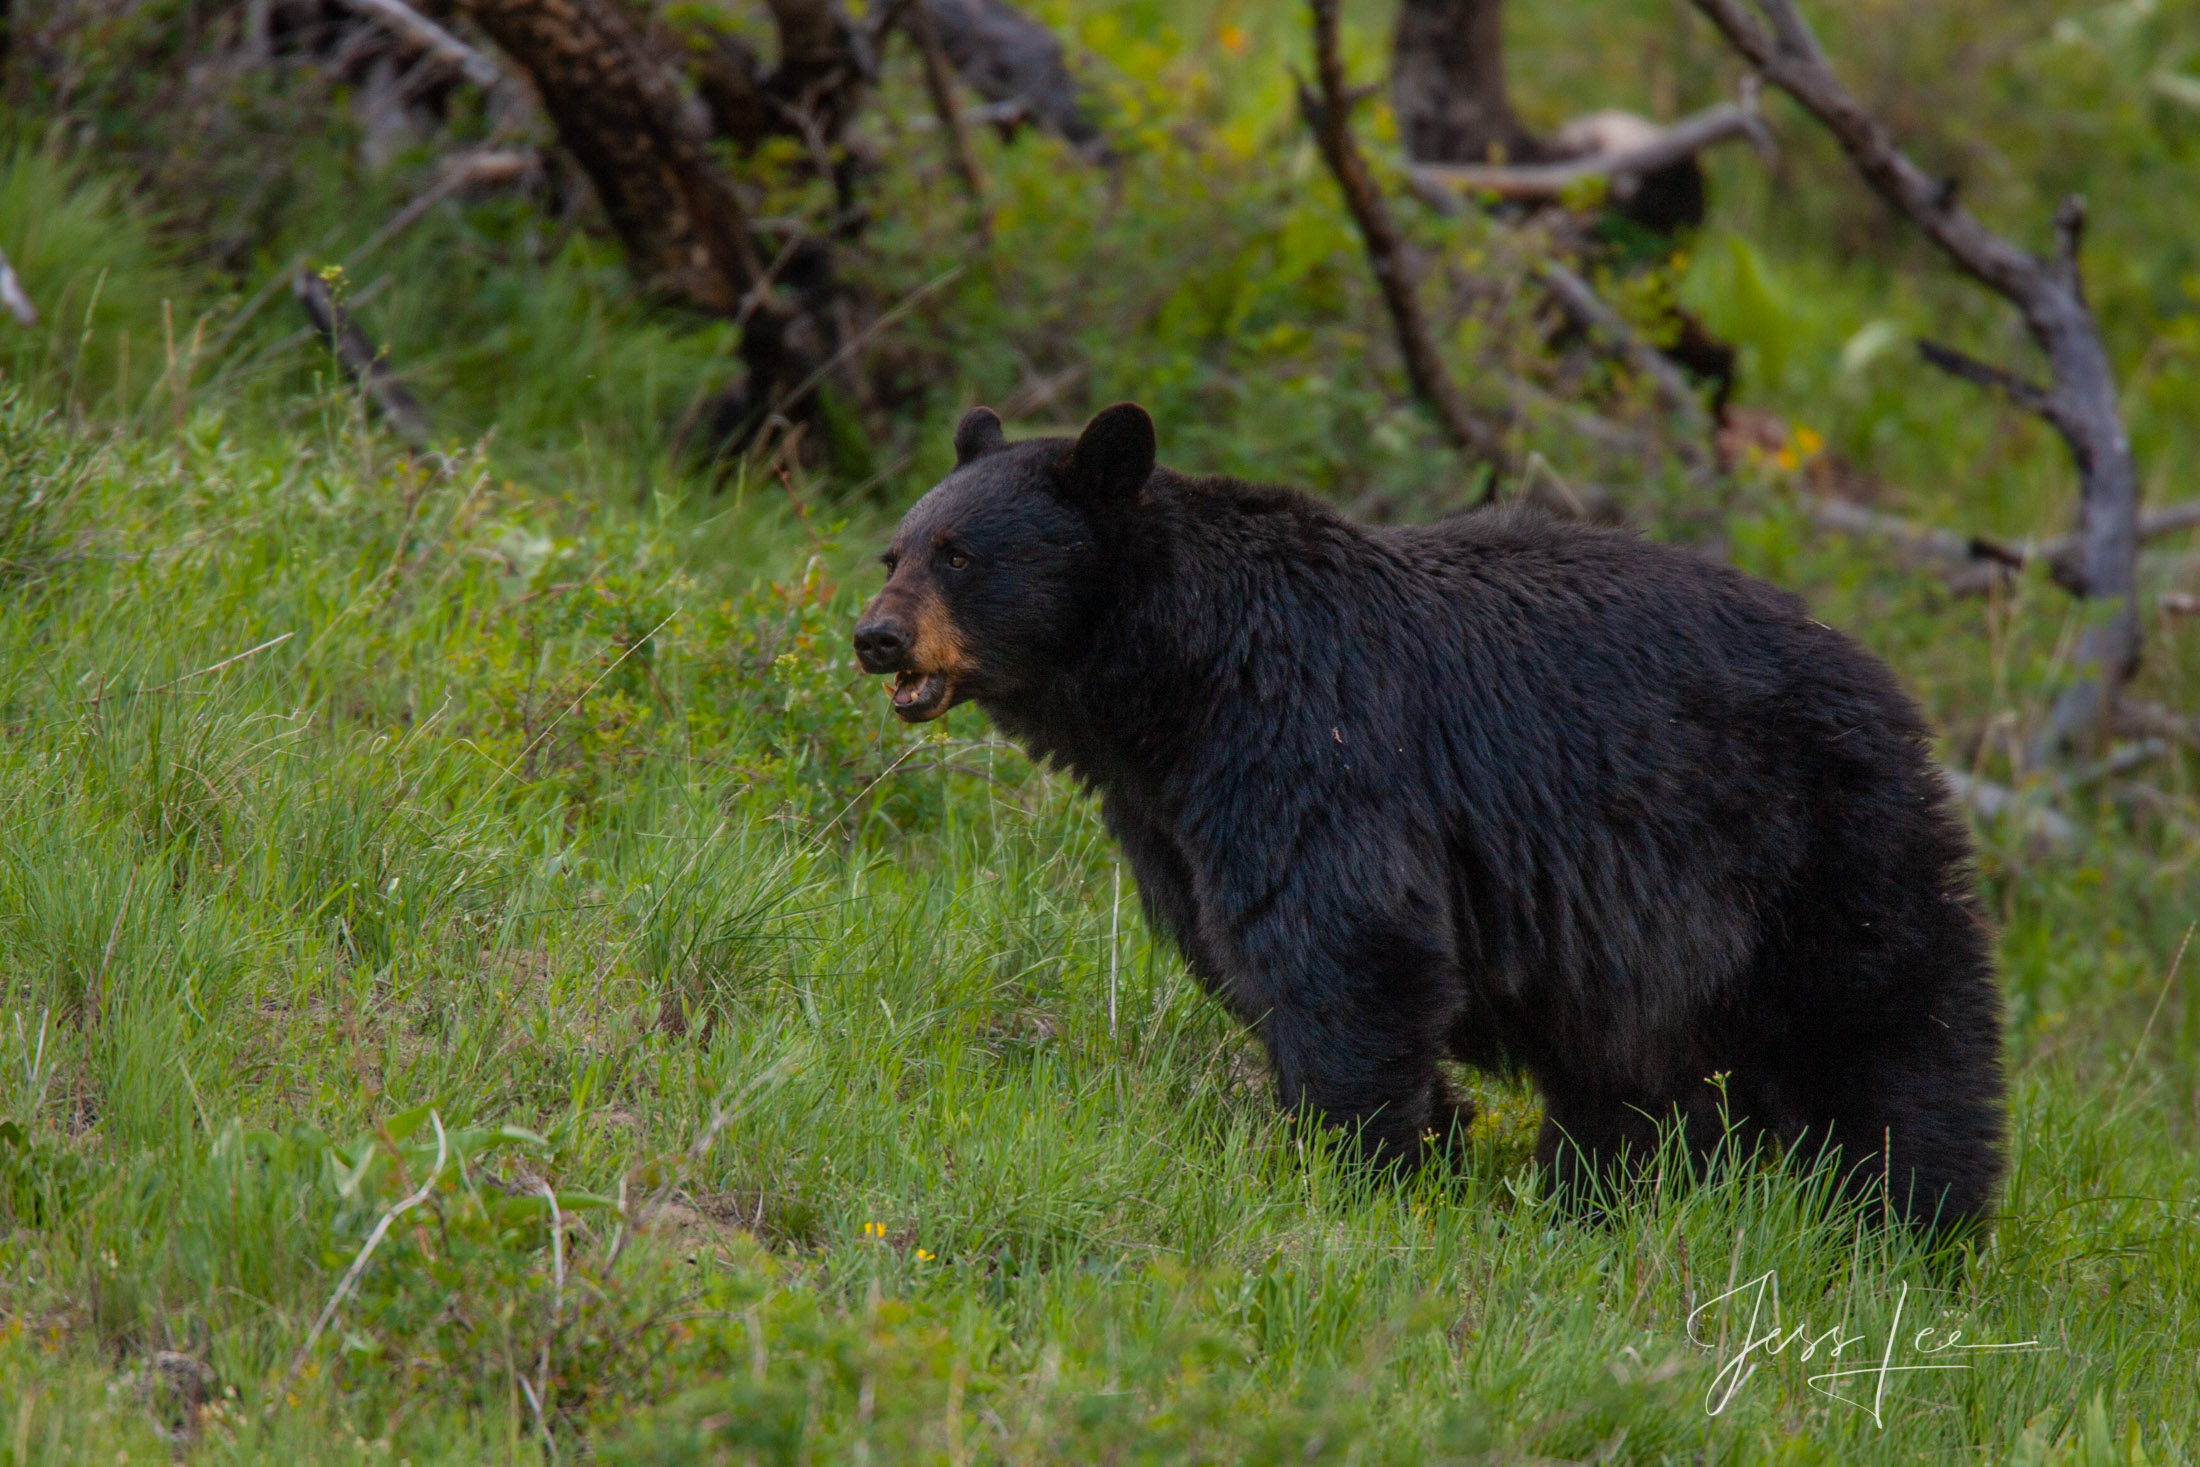 Fat Black Bear Photo  Limited Edition Picture. These bear photographs are offered as high-quality prints for sale as created...